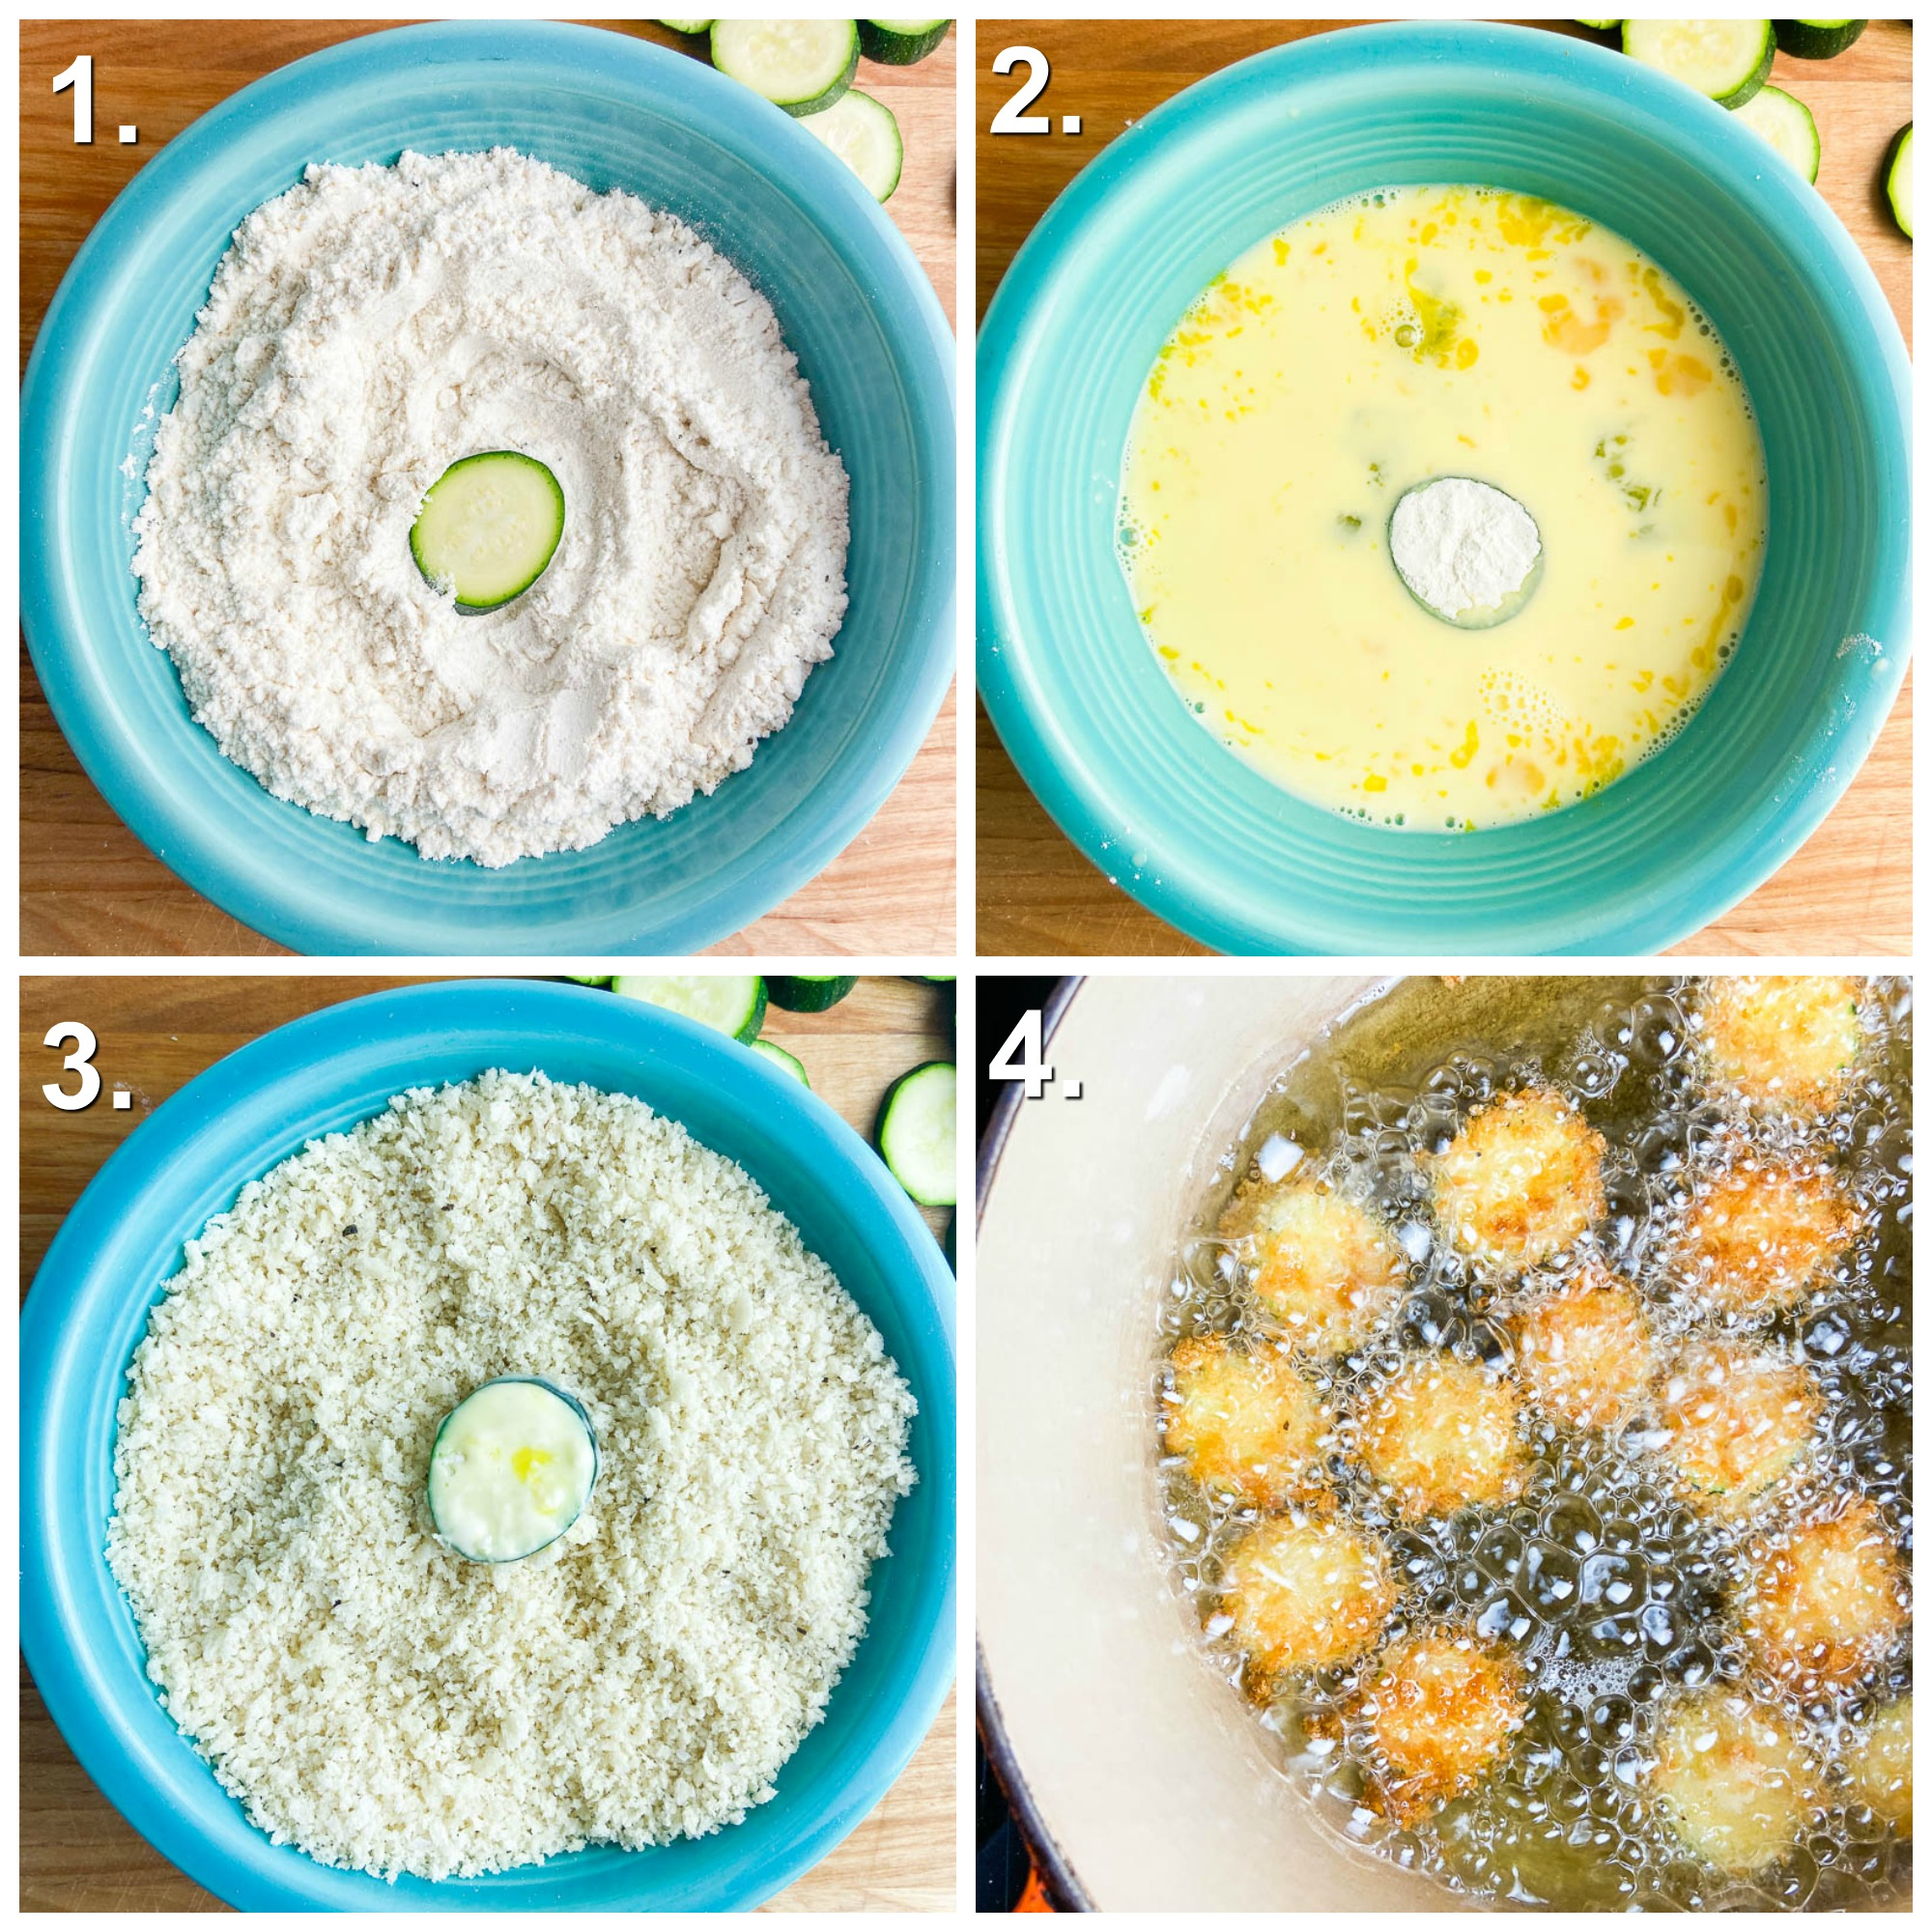 4 photos for how to make fried zucchini. Photo 1: dredging the zucchini round in flour in a teal bowl. Photo 2: Dipping the flour in egg/milk wash in teal bowl. Step 3: Dredging zucchini in panko bread crumbs in seasoned bowl. Step 4: Frying zucchini